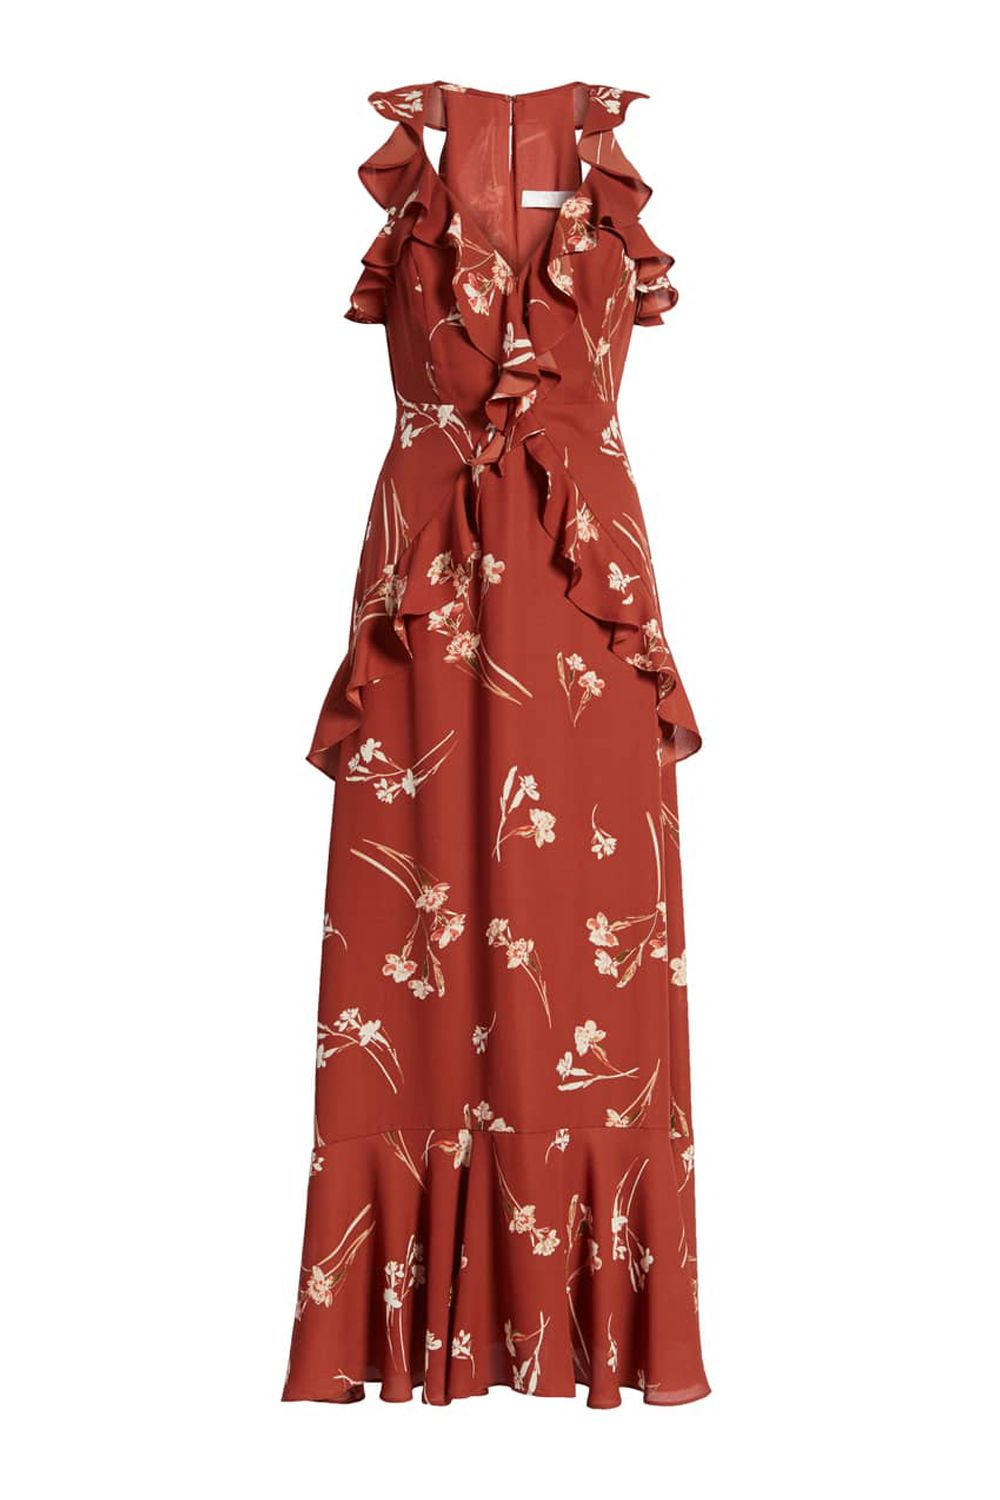 12 Stylish (and Warm) Dresses to Wear to a Winter Wedding